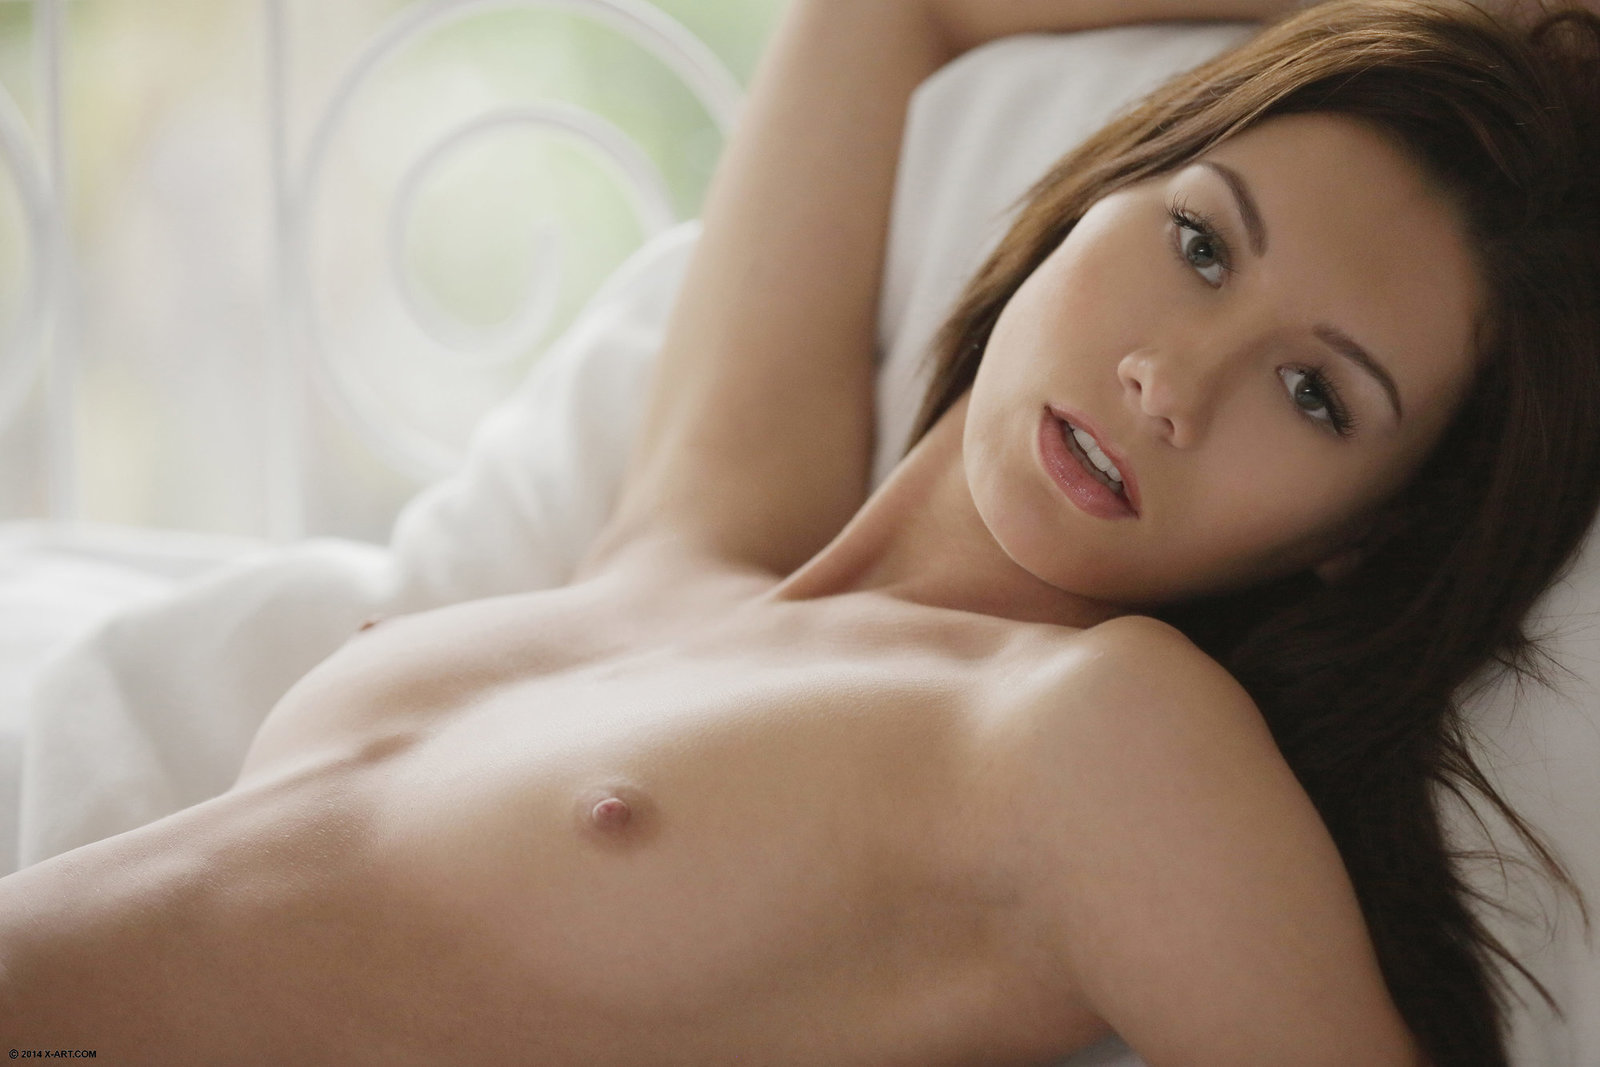 Aika In Picture Me Cumming By X-Art 16 Photos  Erotic -9778